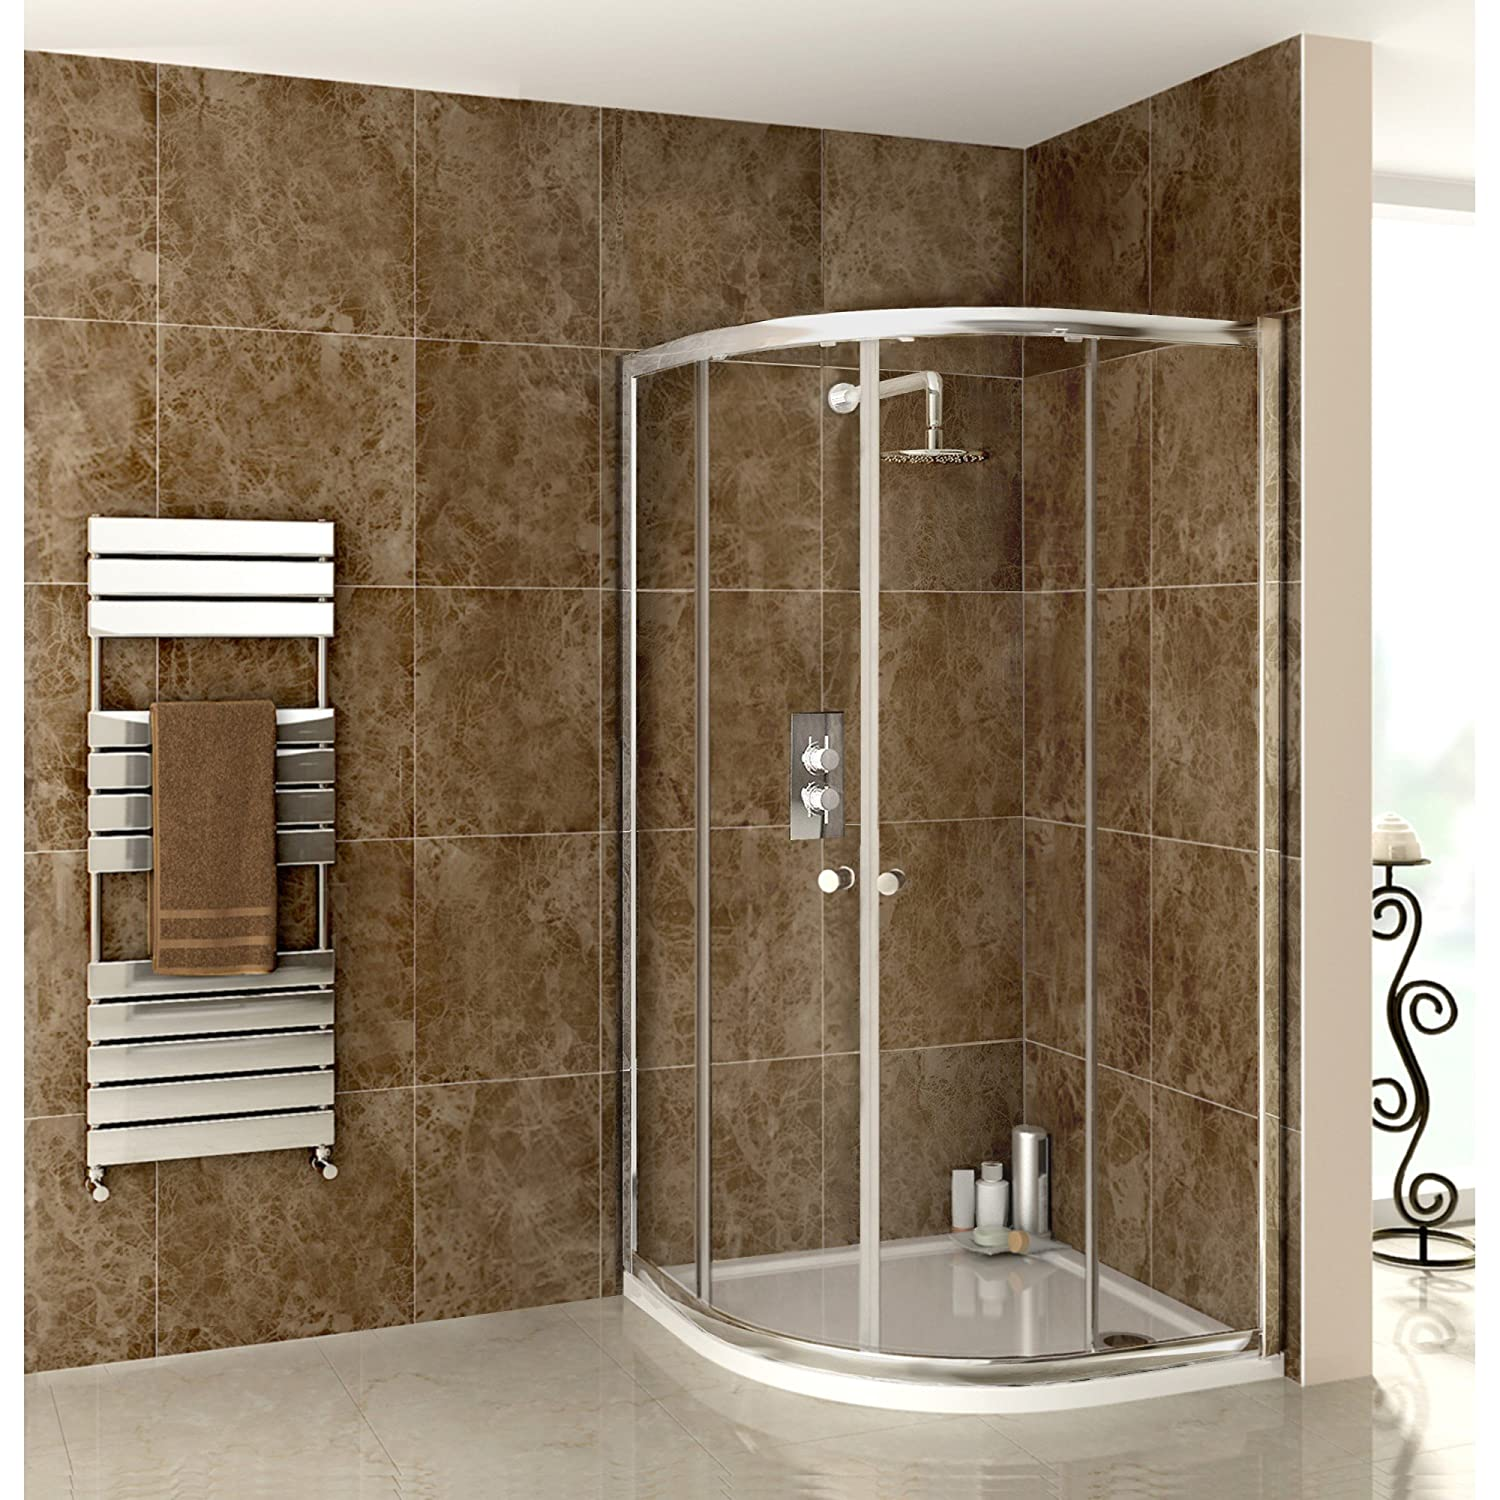 900 X 900 QUADRANT SHOWER ENCLOSURE GLASS DOOR: Amazon.co.uk: DIY ...